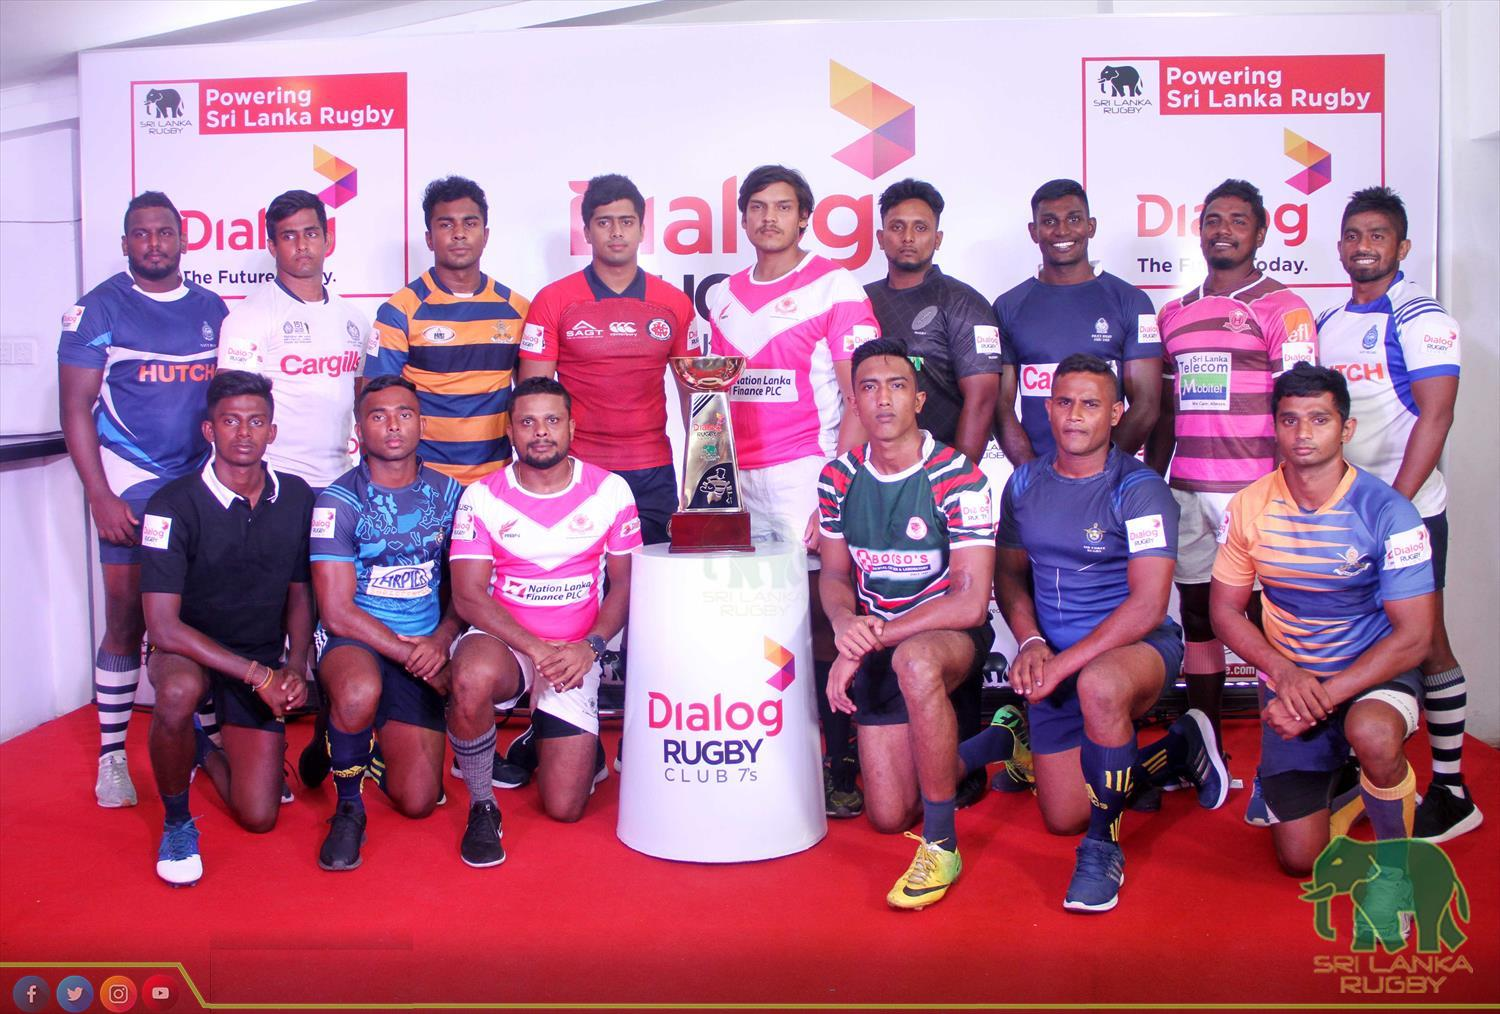 The Dialog Inter Club Rugby 7's 2019